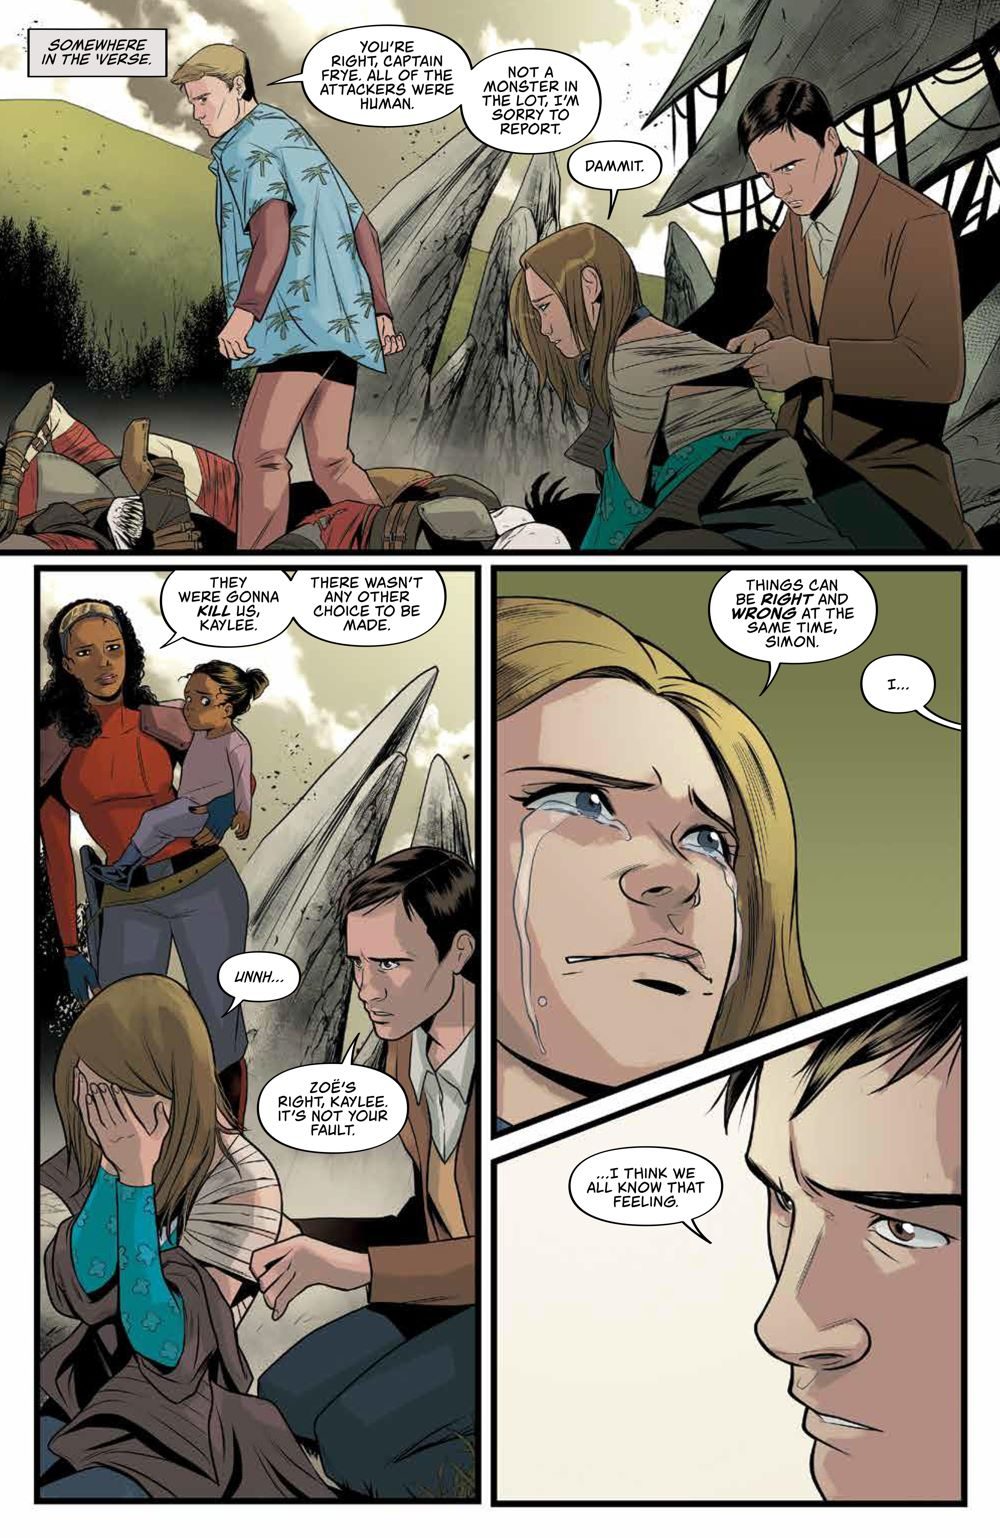 Firefly_029_PRESS_3 ComicList Previews: FIREFLY #29